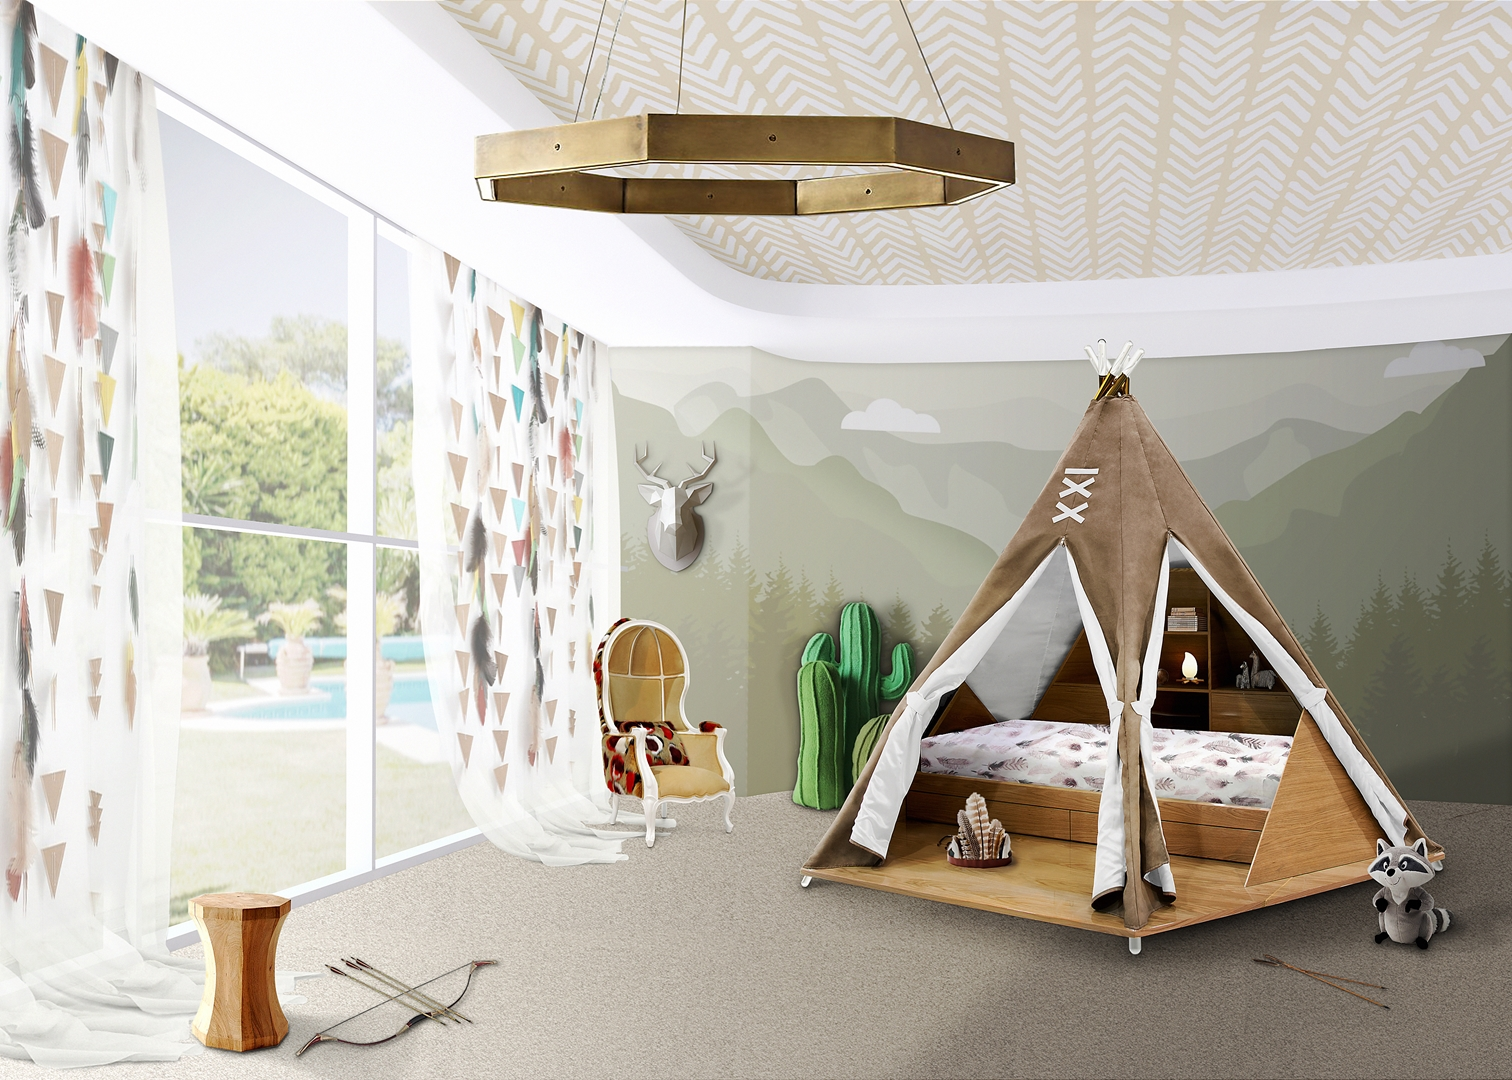 teepee-room-ambience-circu-magical-furniture-01 (1) (Copy)